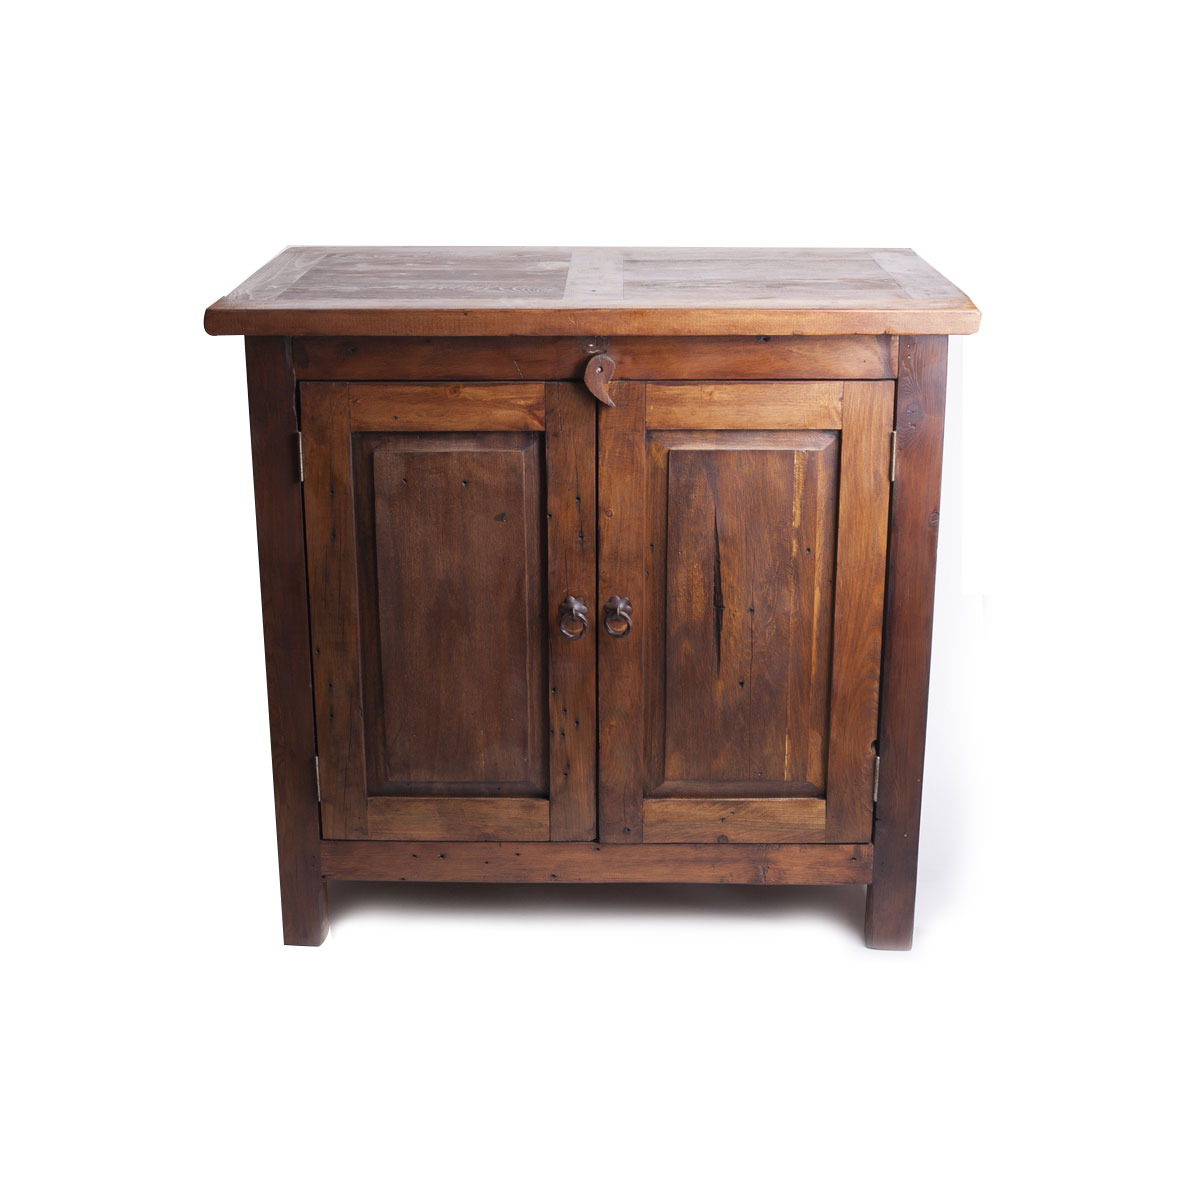 Reclaimed barn wood bathroom vanity 28 images for Buy reclaimed wood online